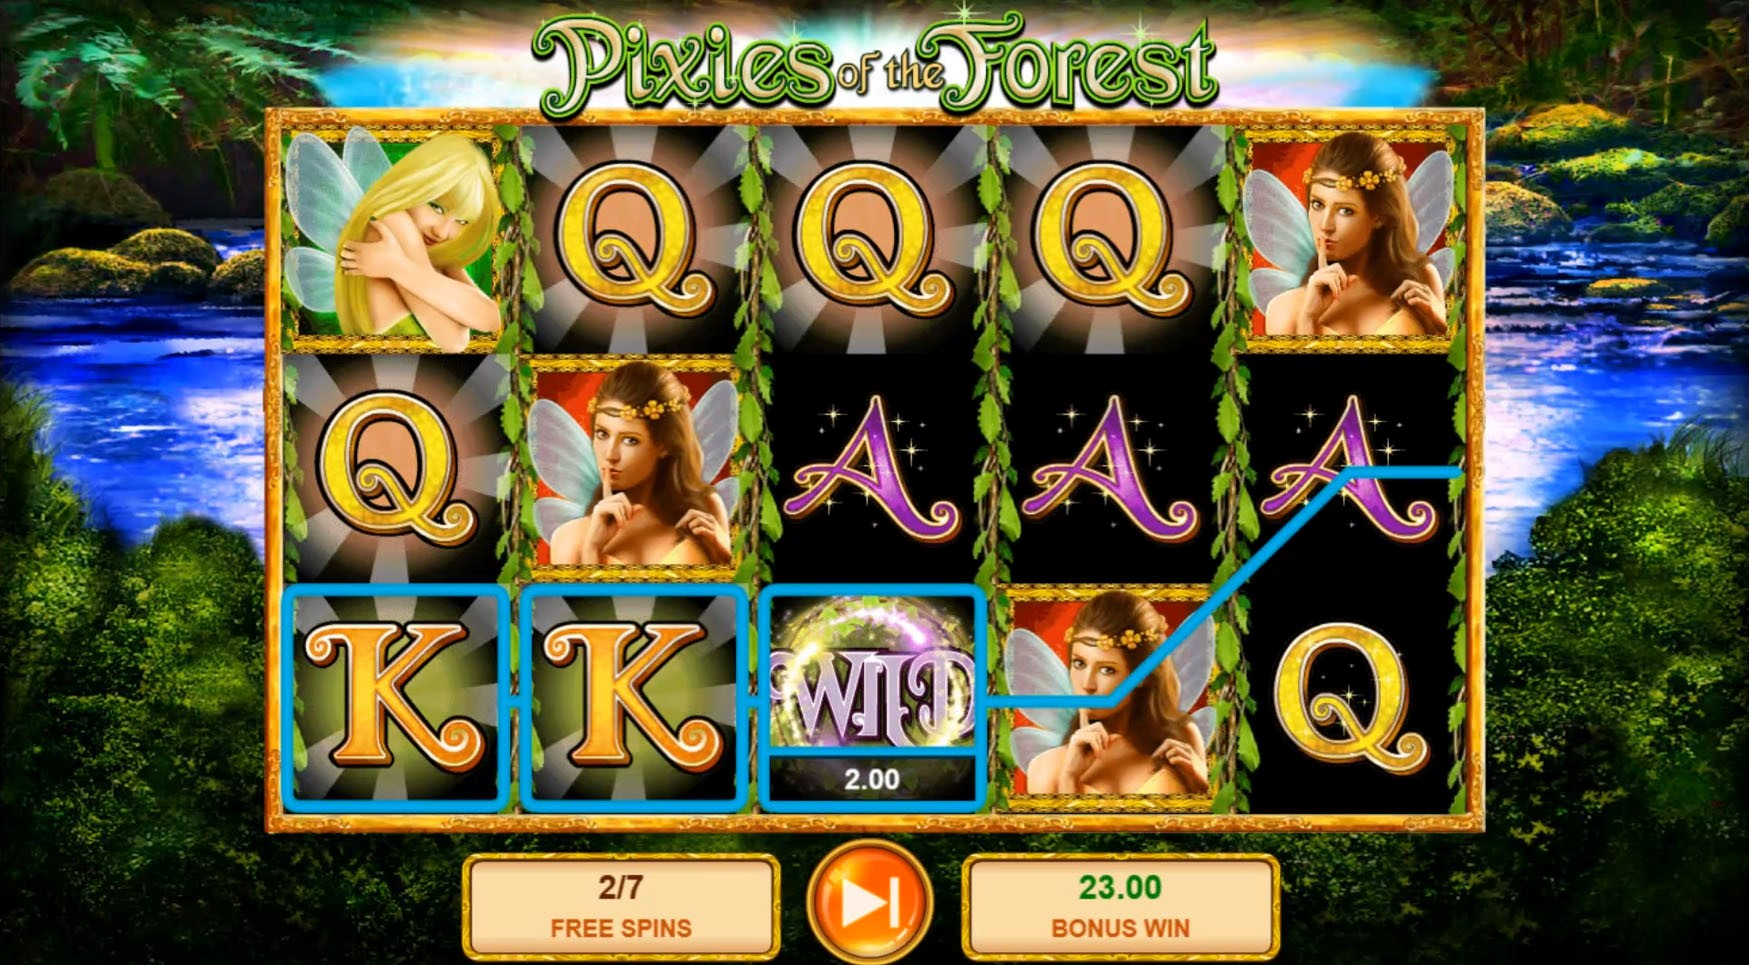 A Free Spins bonus game win is awarded during the Pixies of the Forest slot game